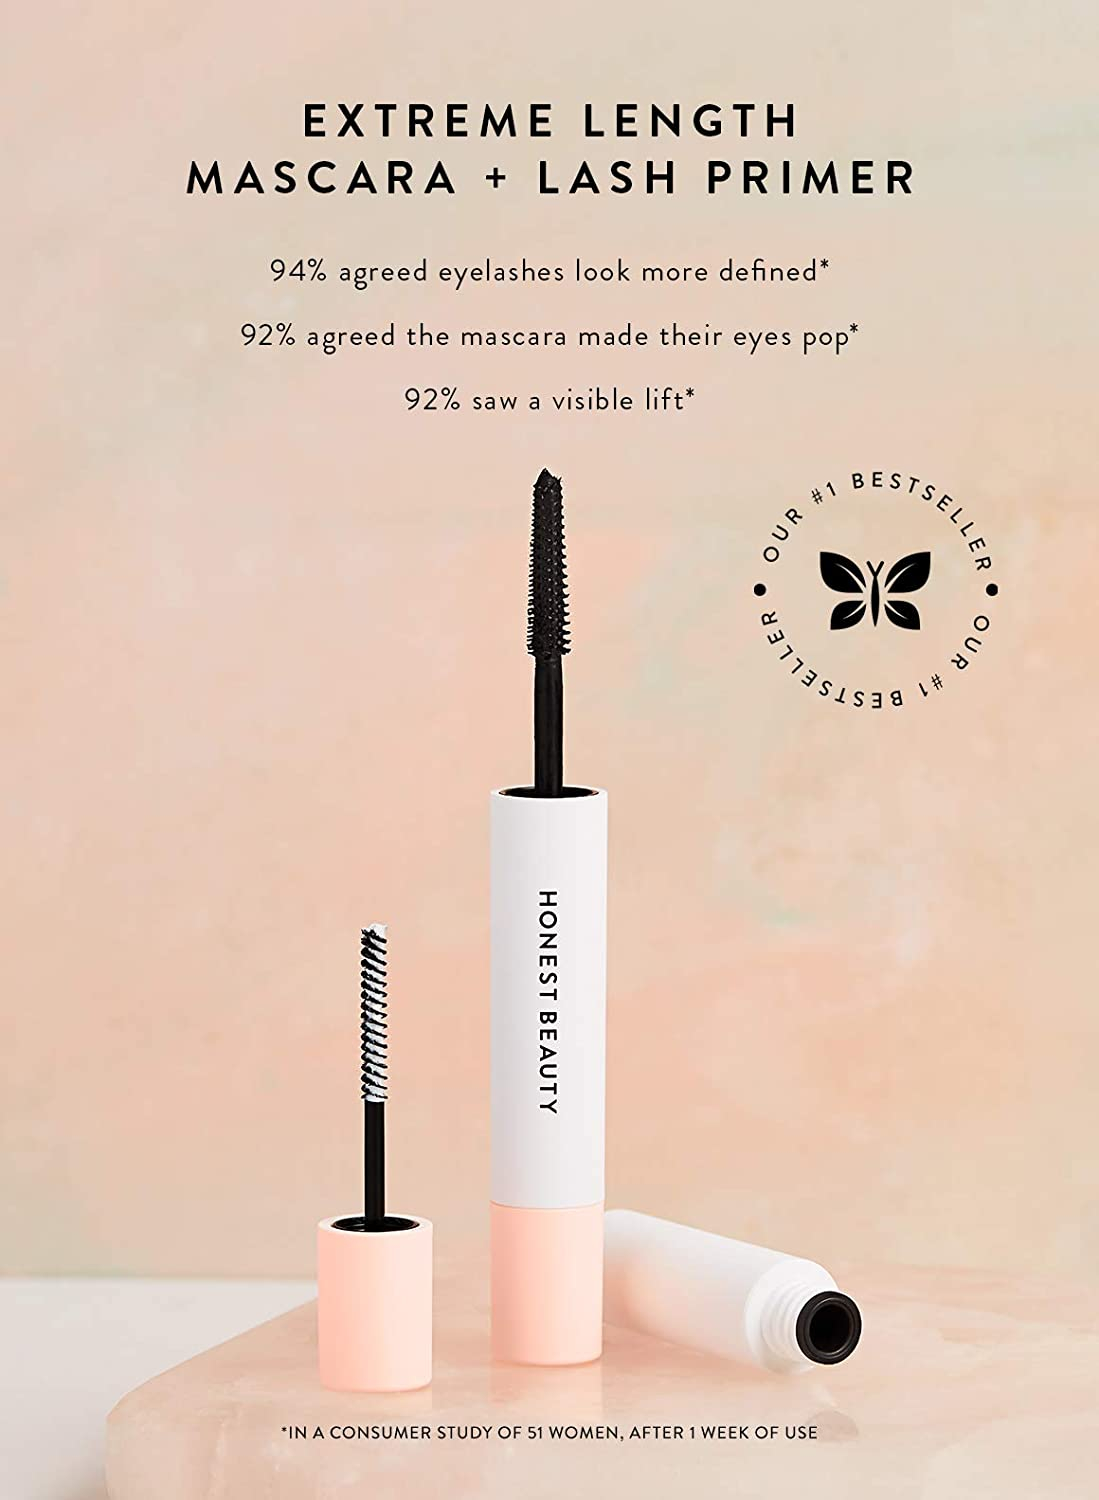 cac525e9632 Amazon.com : Honest Beauty Extreme Length Mascara + Lash Primer | 2-in-1  Boosts Lash Length, Volume & Definition | Silicone Free, Paraben Free, ...